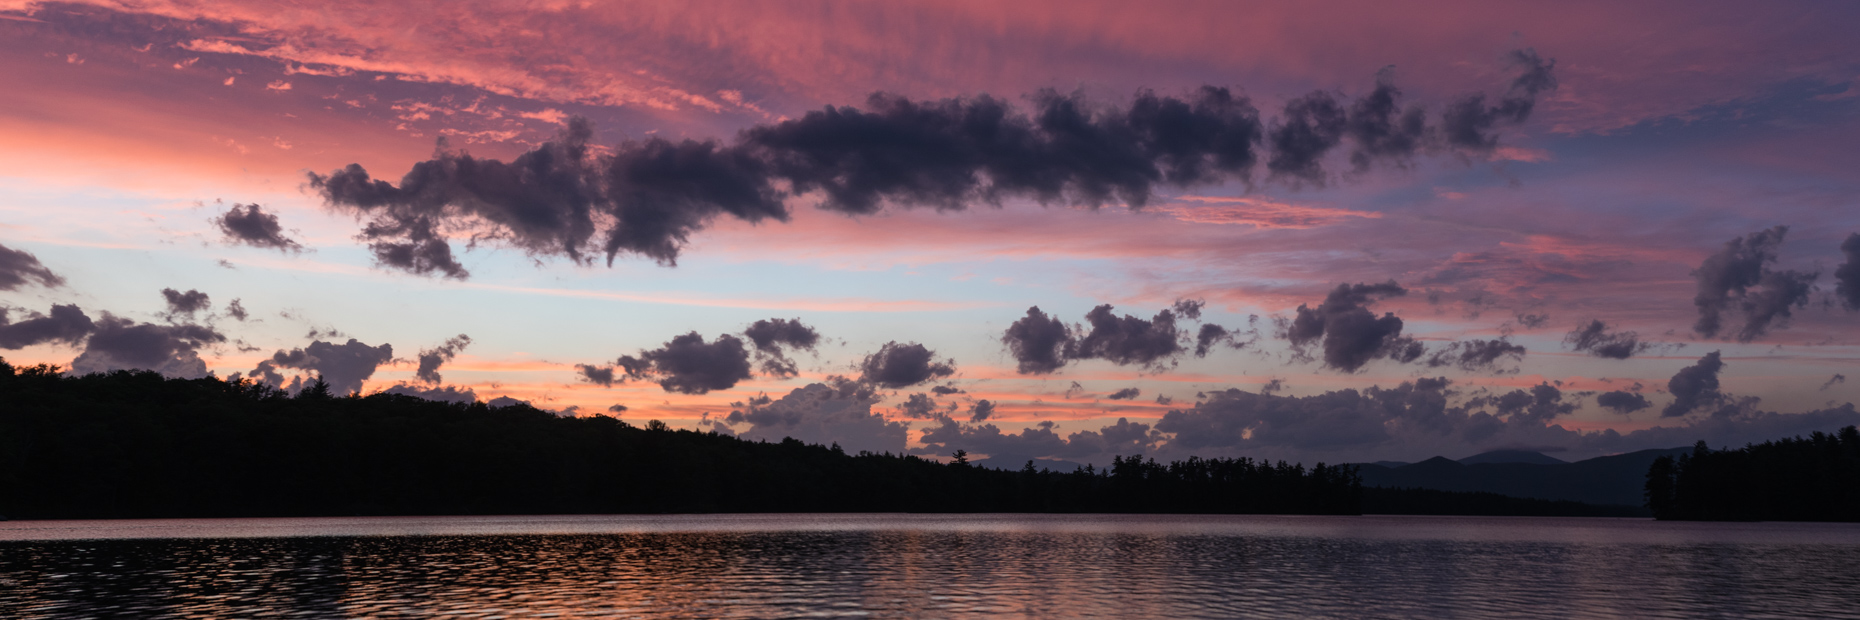 Sunset on Conway Lake, New Hampshire.